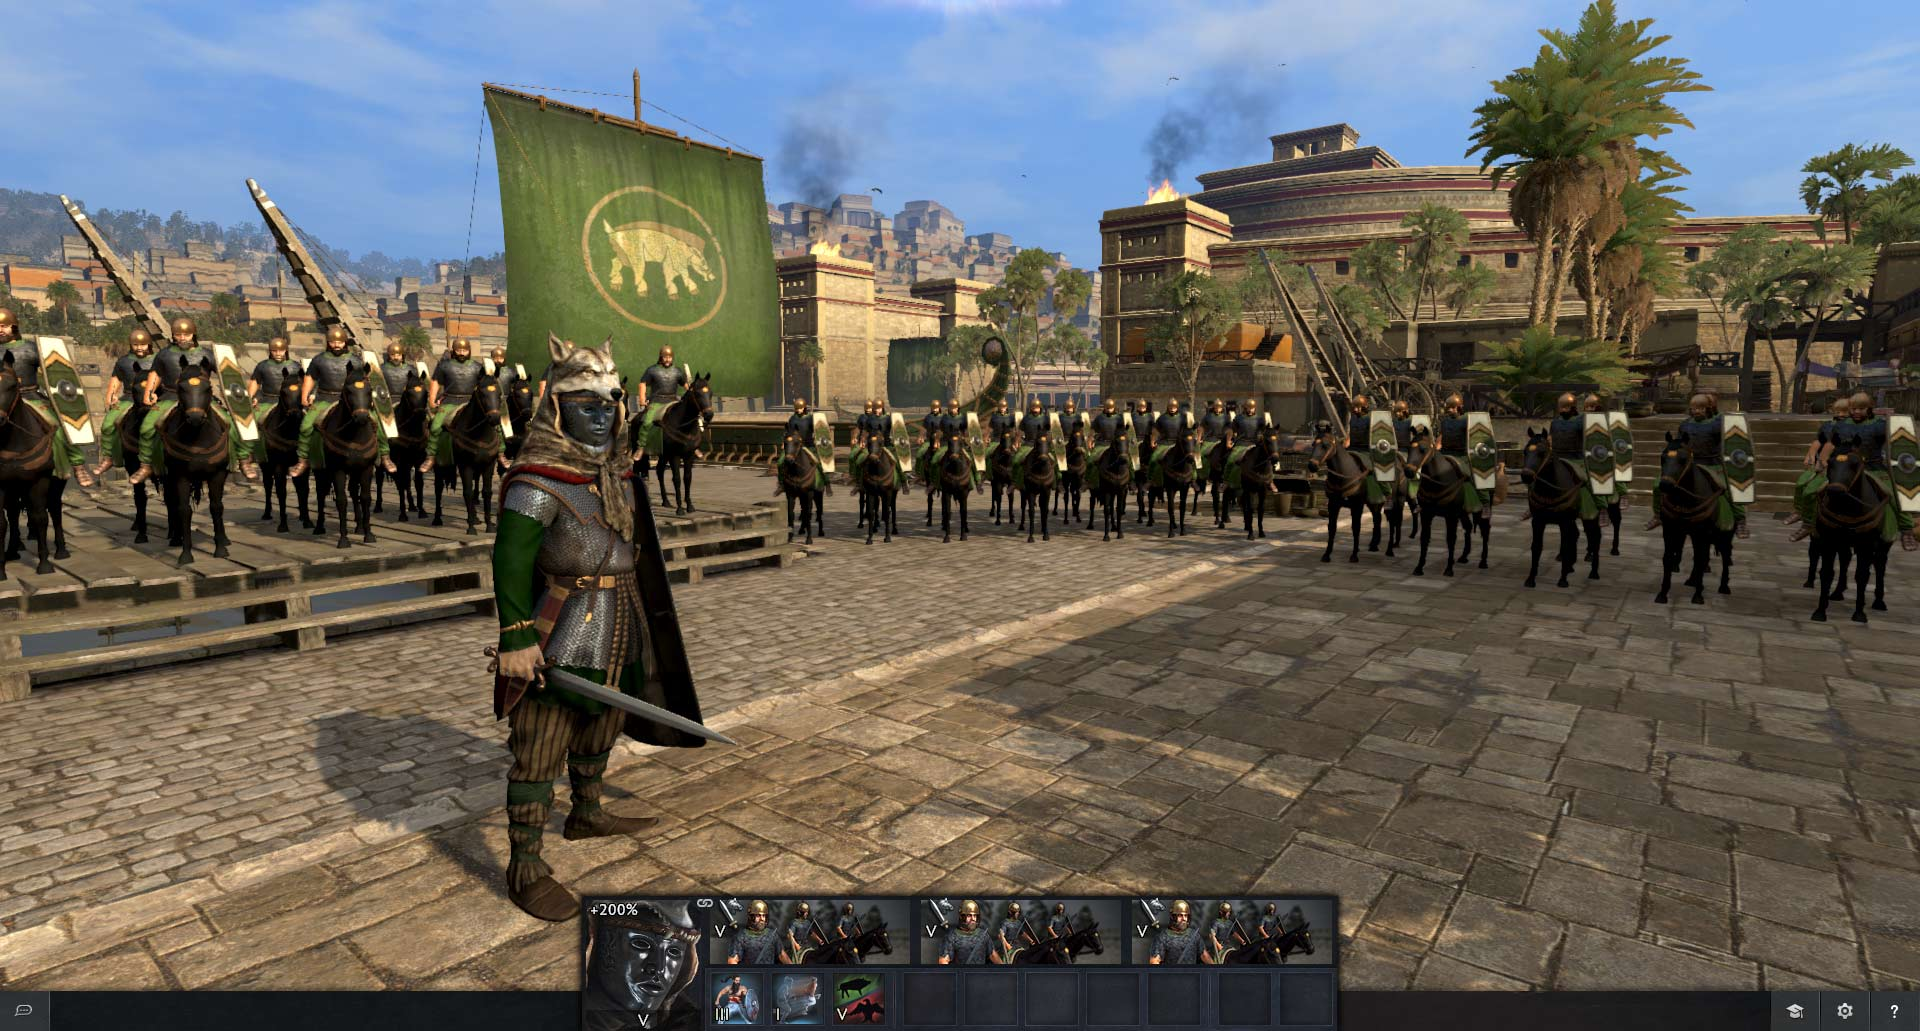 Análisis de Total War Arena para PC